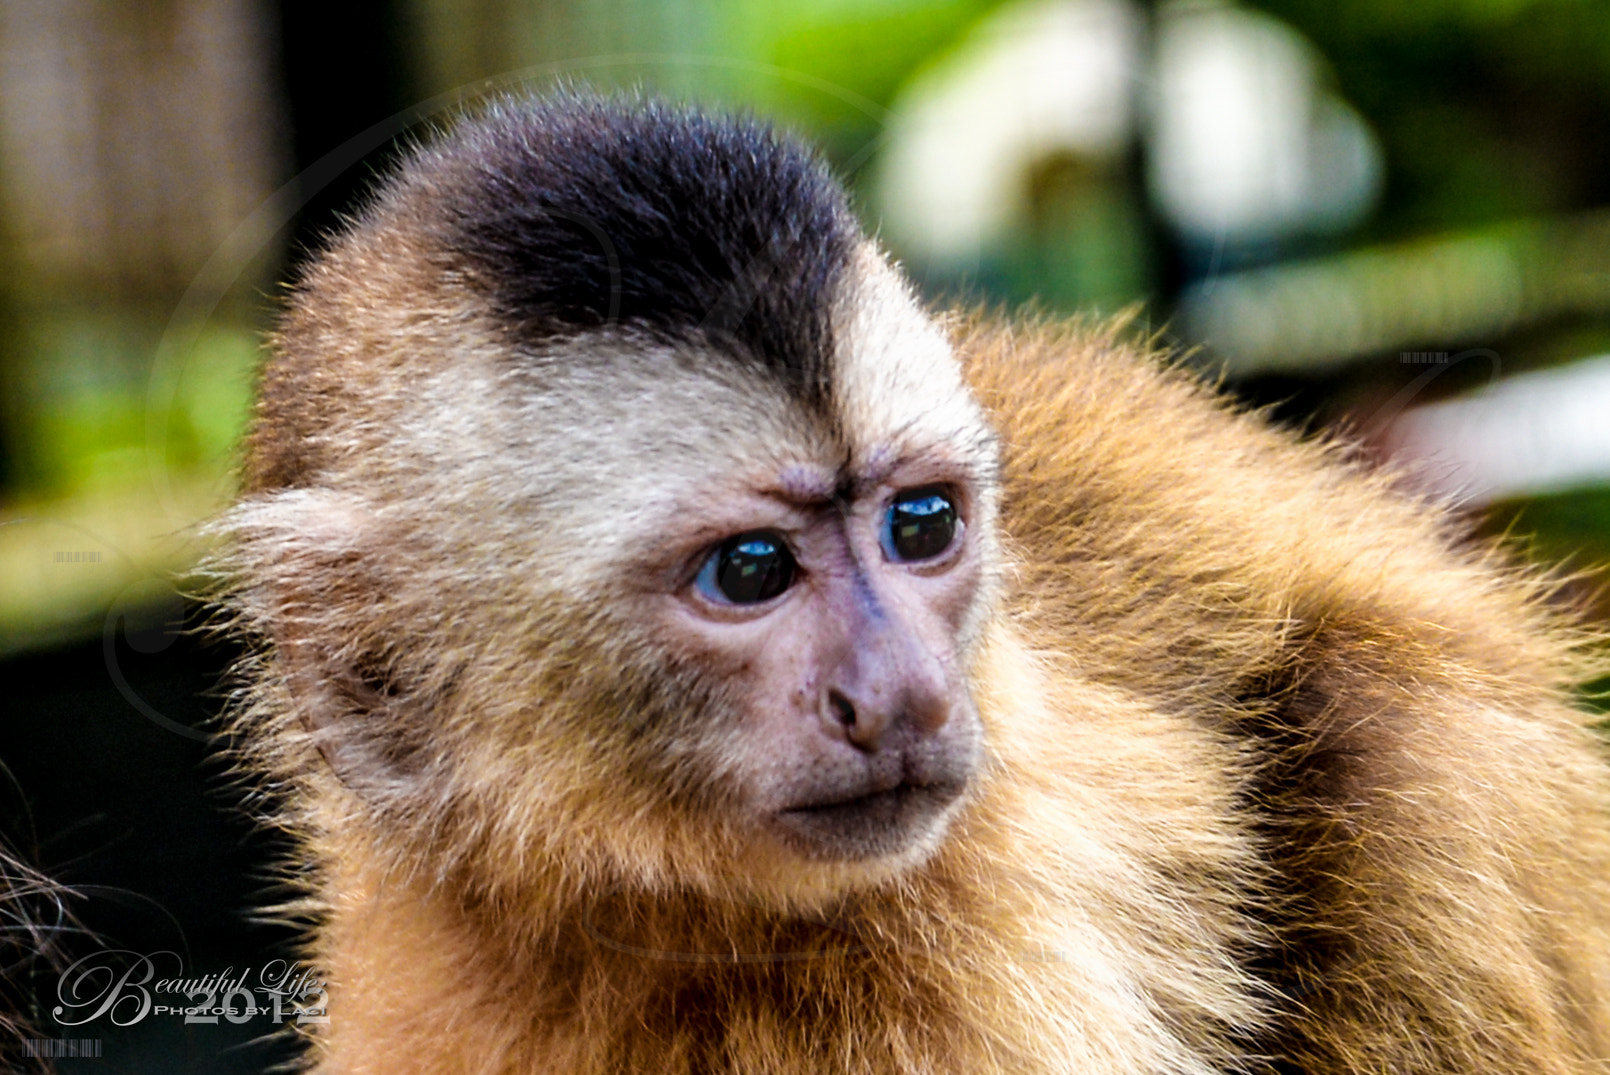 Photograph Monkey  by Laci Meixner on 500px